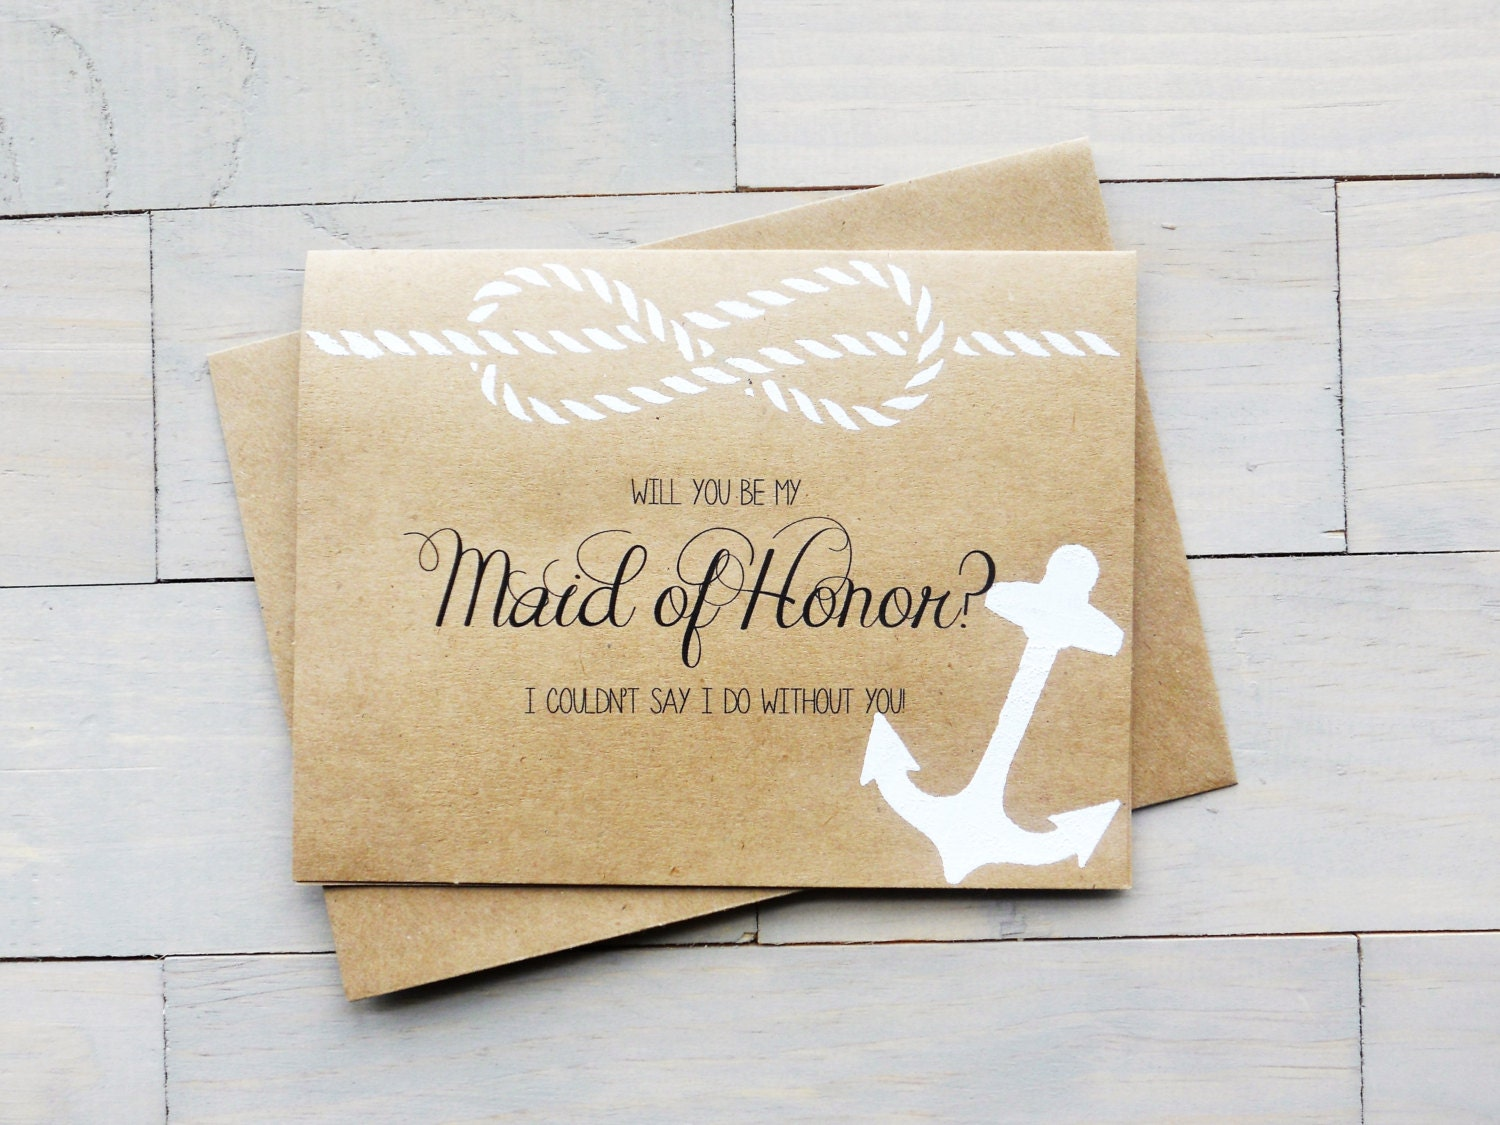 Beach Wedding Bridesmaid Gifts: Will You Be My Maid Of Honor Bridesmaid Gift Beach Wedding